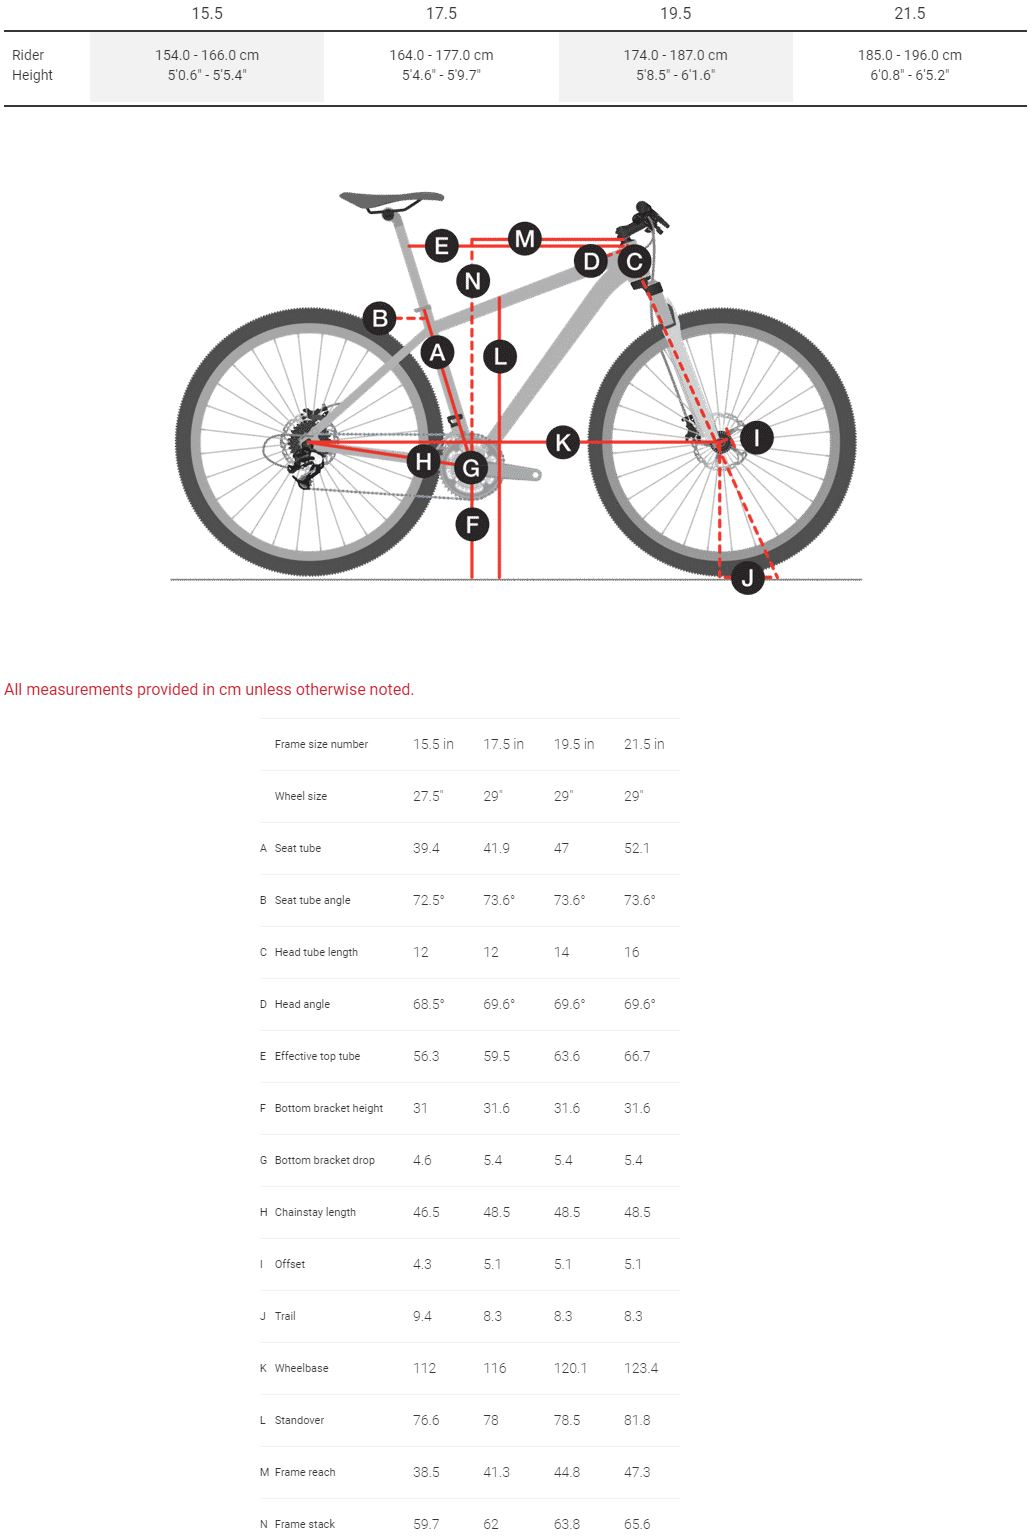 Trek Powerfly Geometry Chart